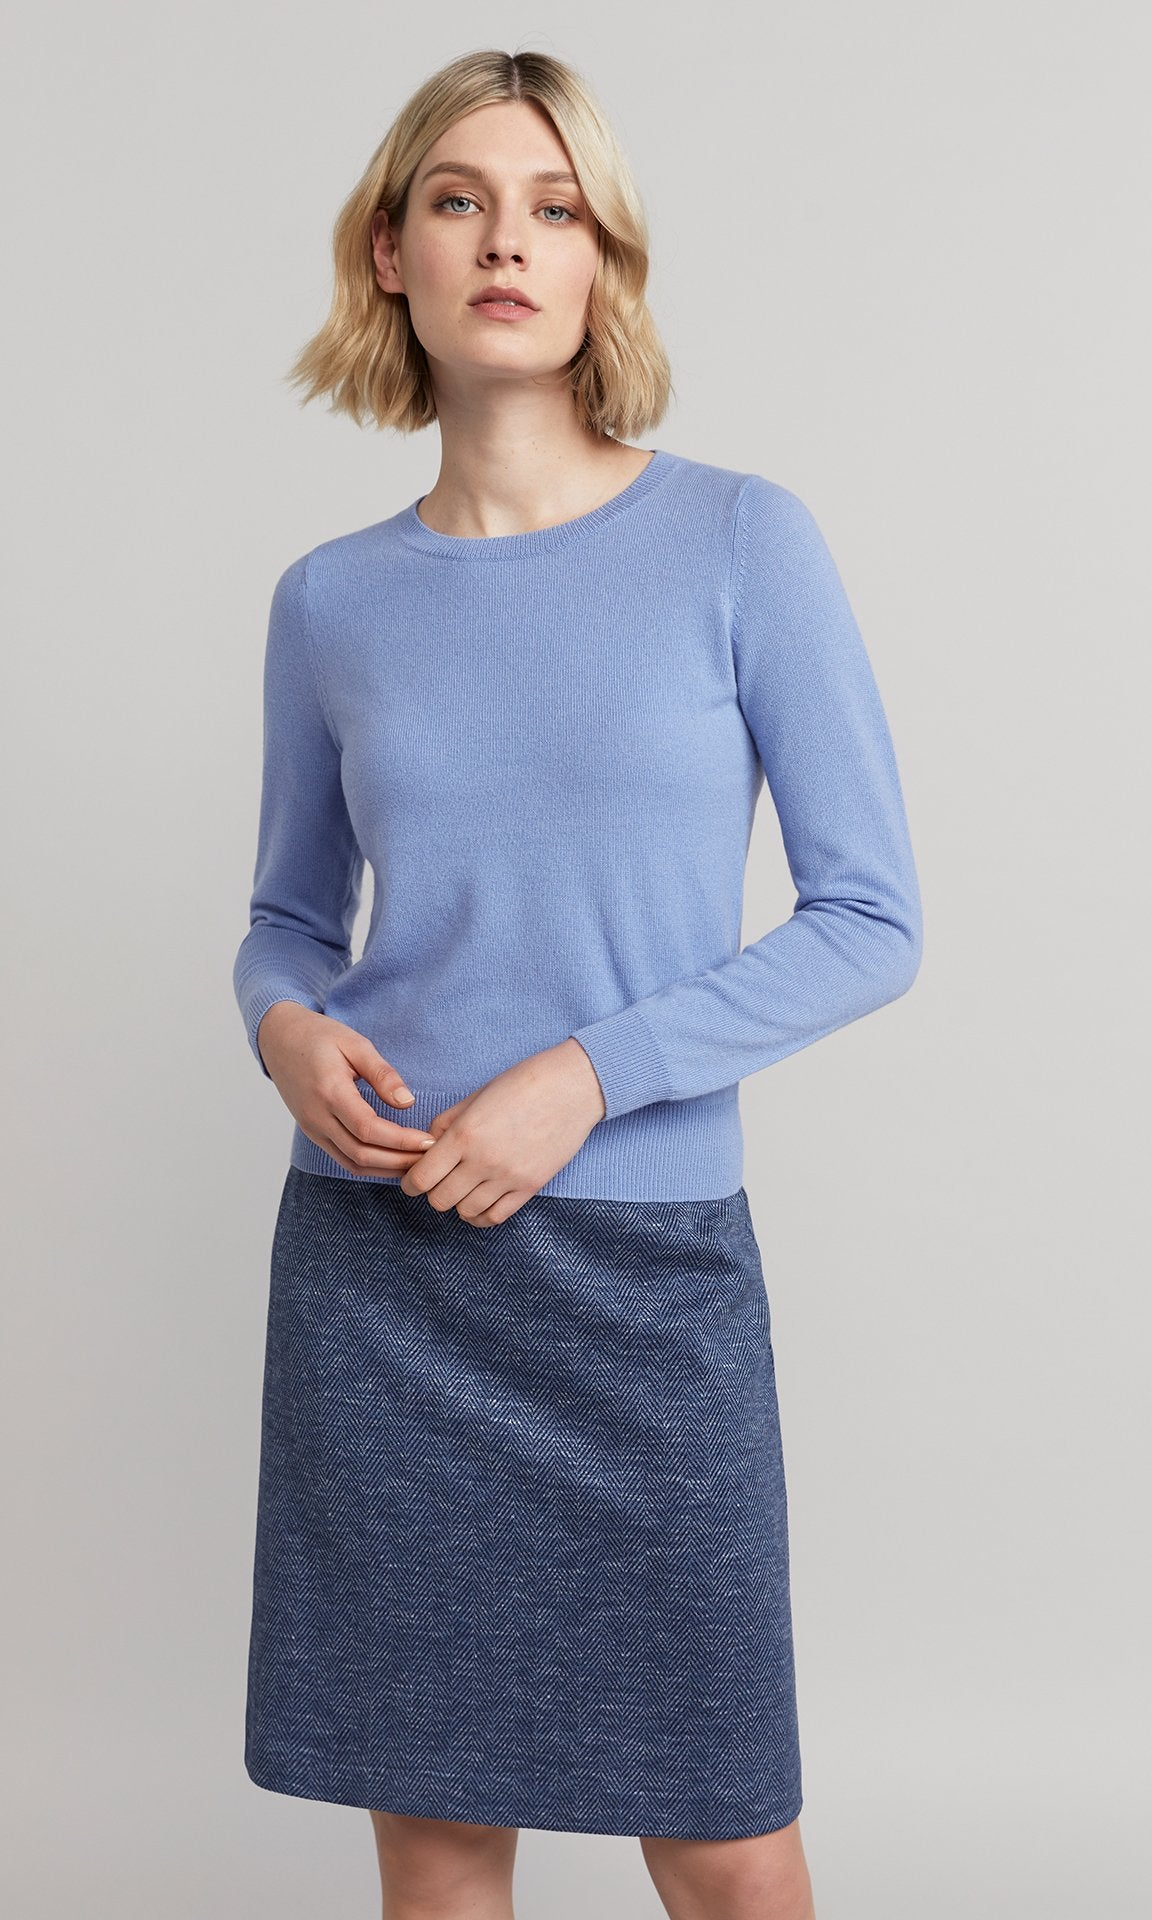 Ella Knit - Blue